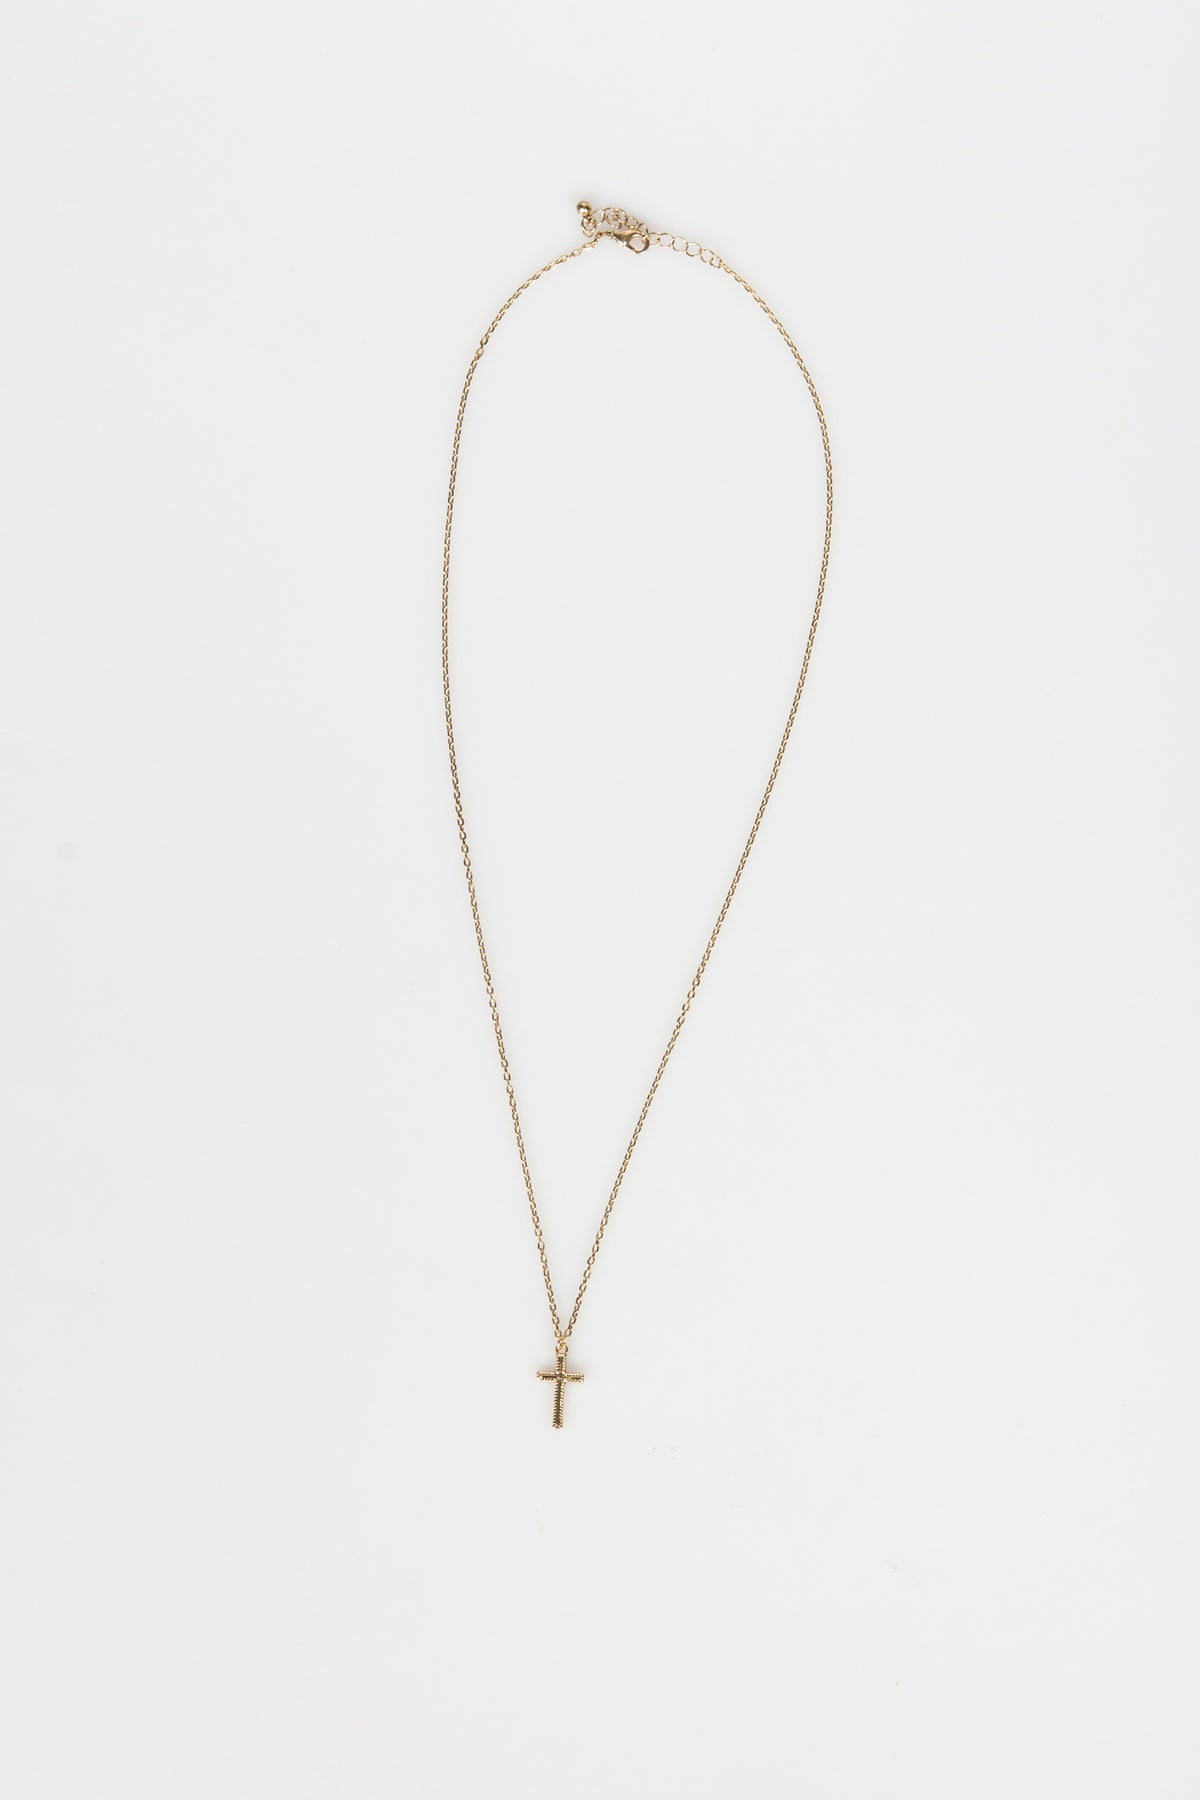 Nth Long Cross Necklace Antique Gold